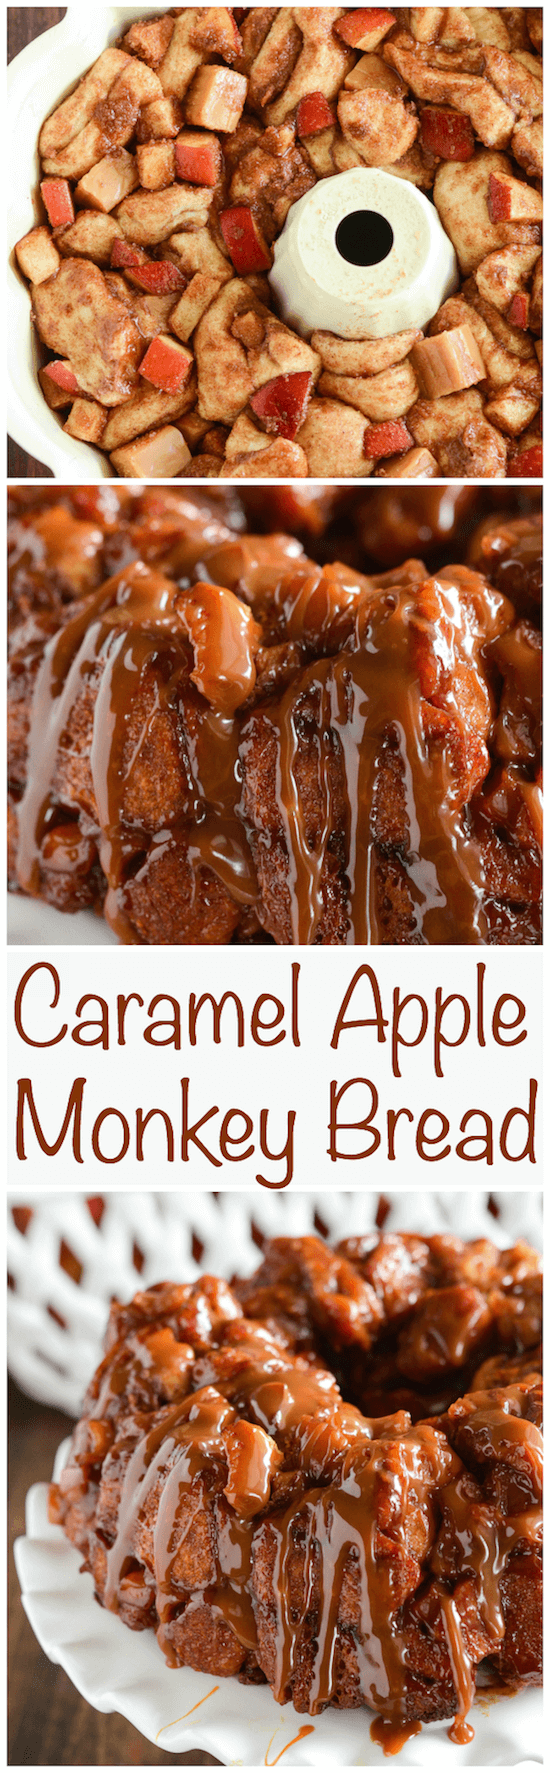 Caramel Apple Monkey Bread - only 6 ingredients! Caramel, fresh apple bites and lots of sweet cinnamon roll bites!